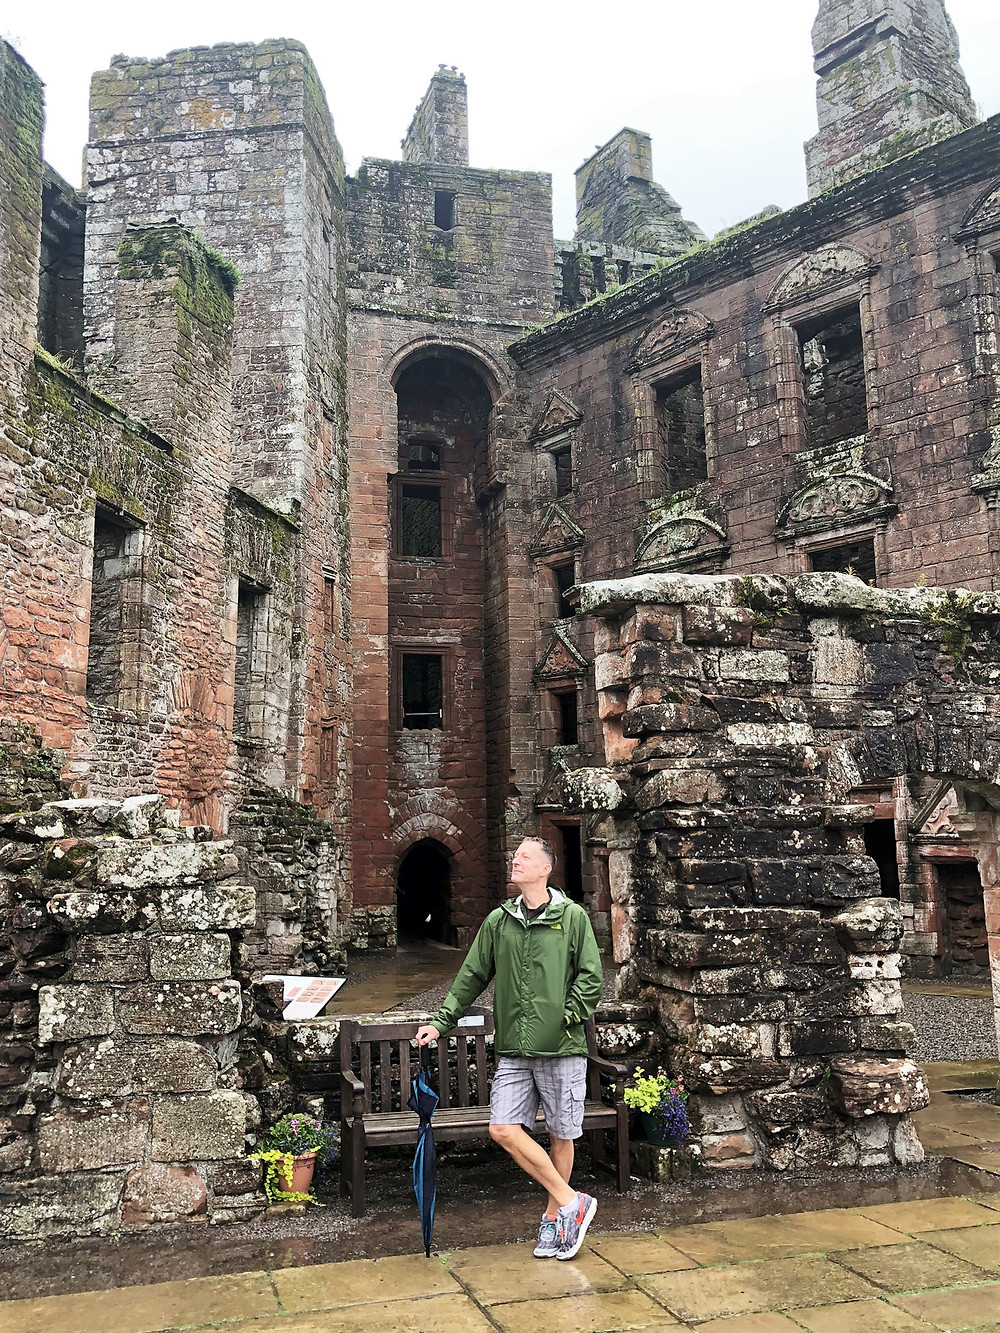 The Earl of Caerlaverock Castle surveys his vast land holding from the courtyard.